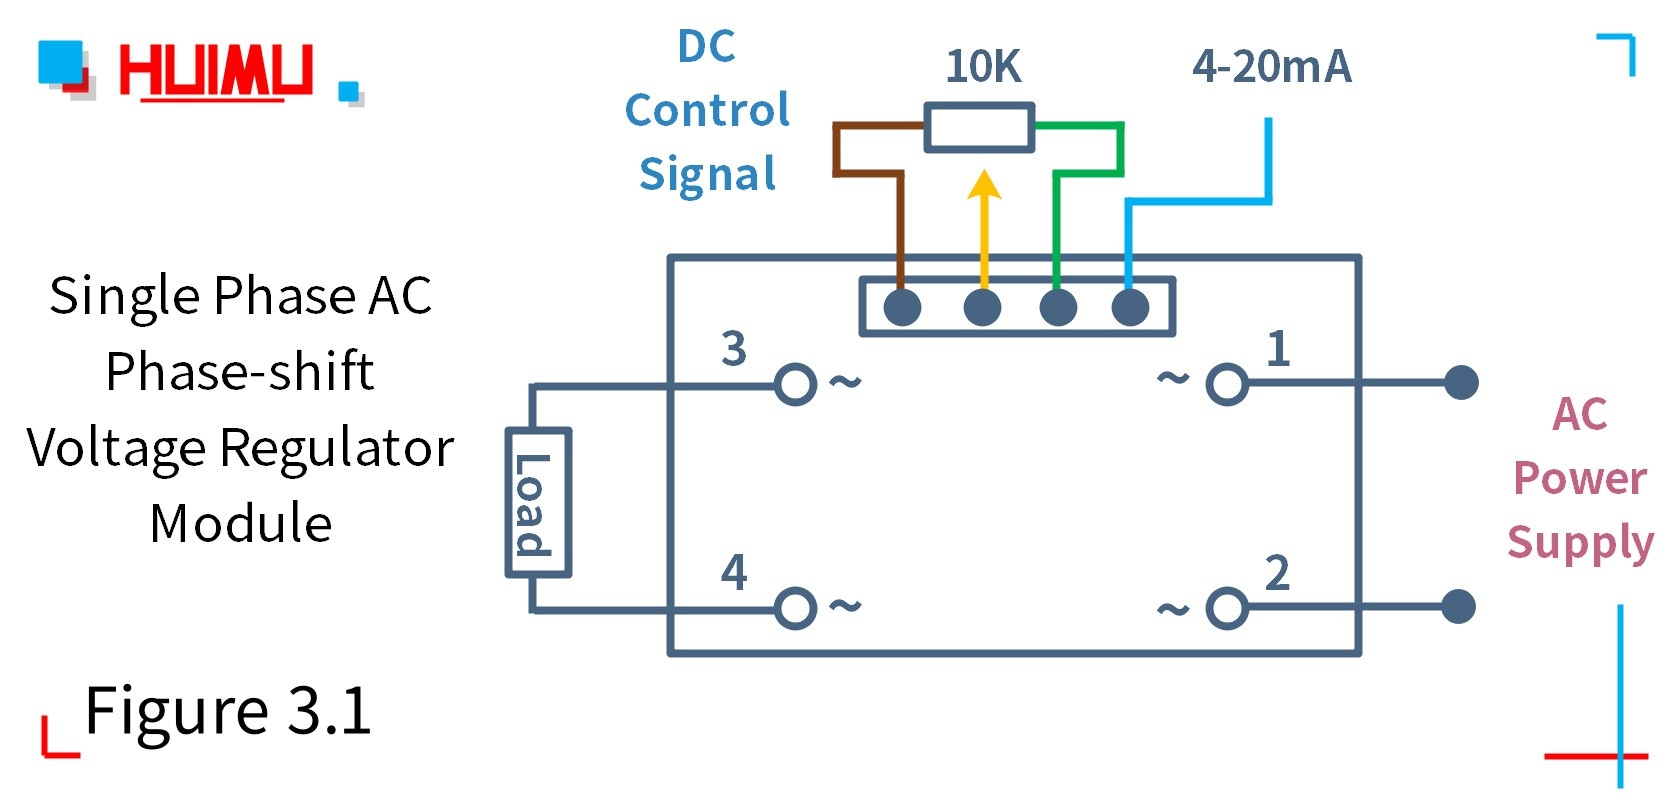 How to wire MGR mager MGR-DTY-F-22-70A-EG single phase AC phase-shift voltage regulator? More detail via www.@huimultd.com